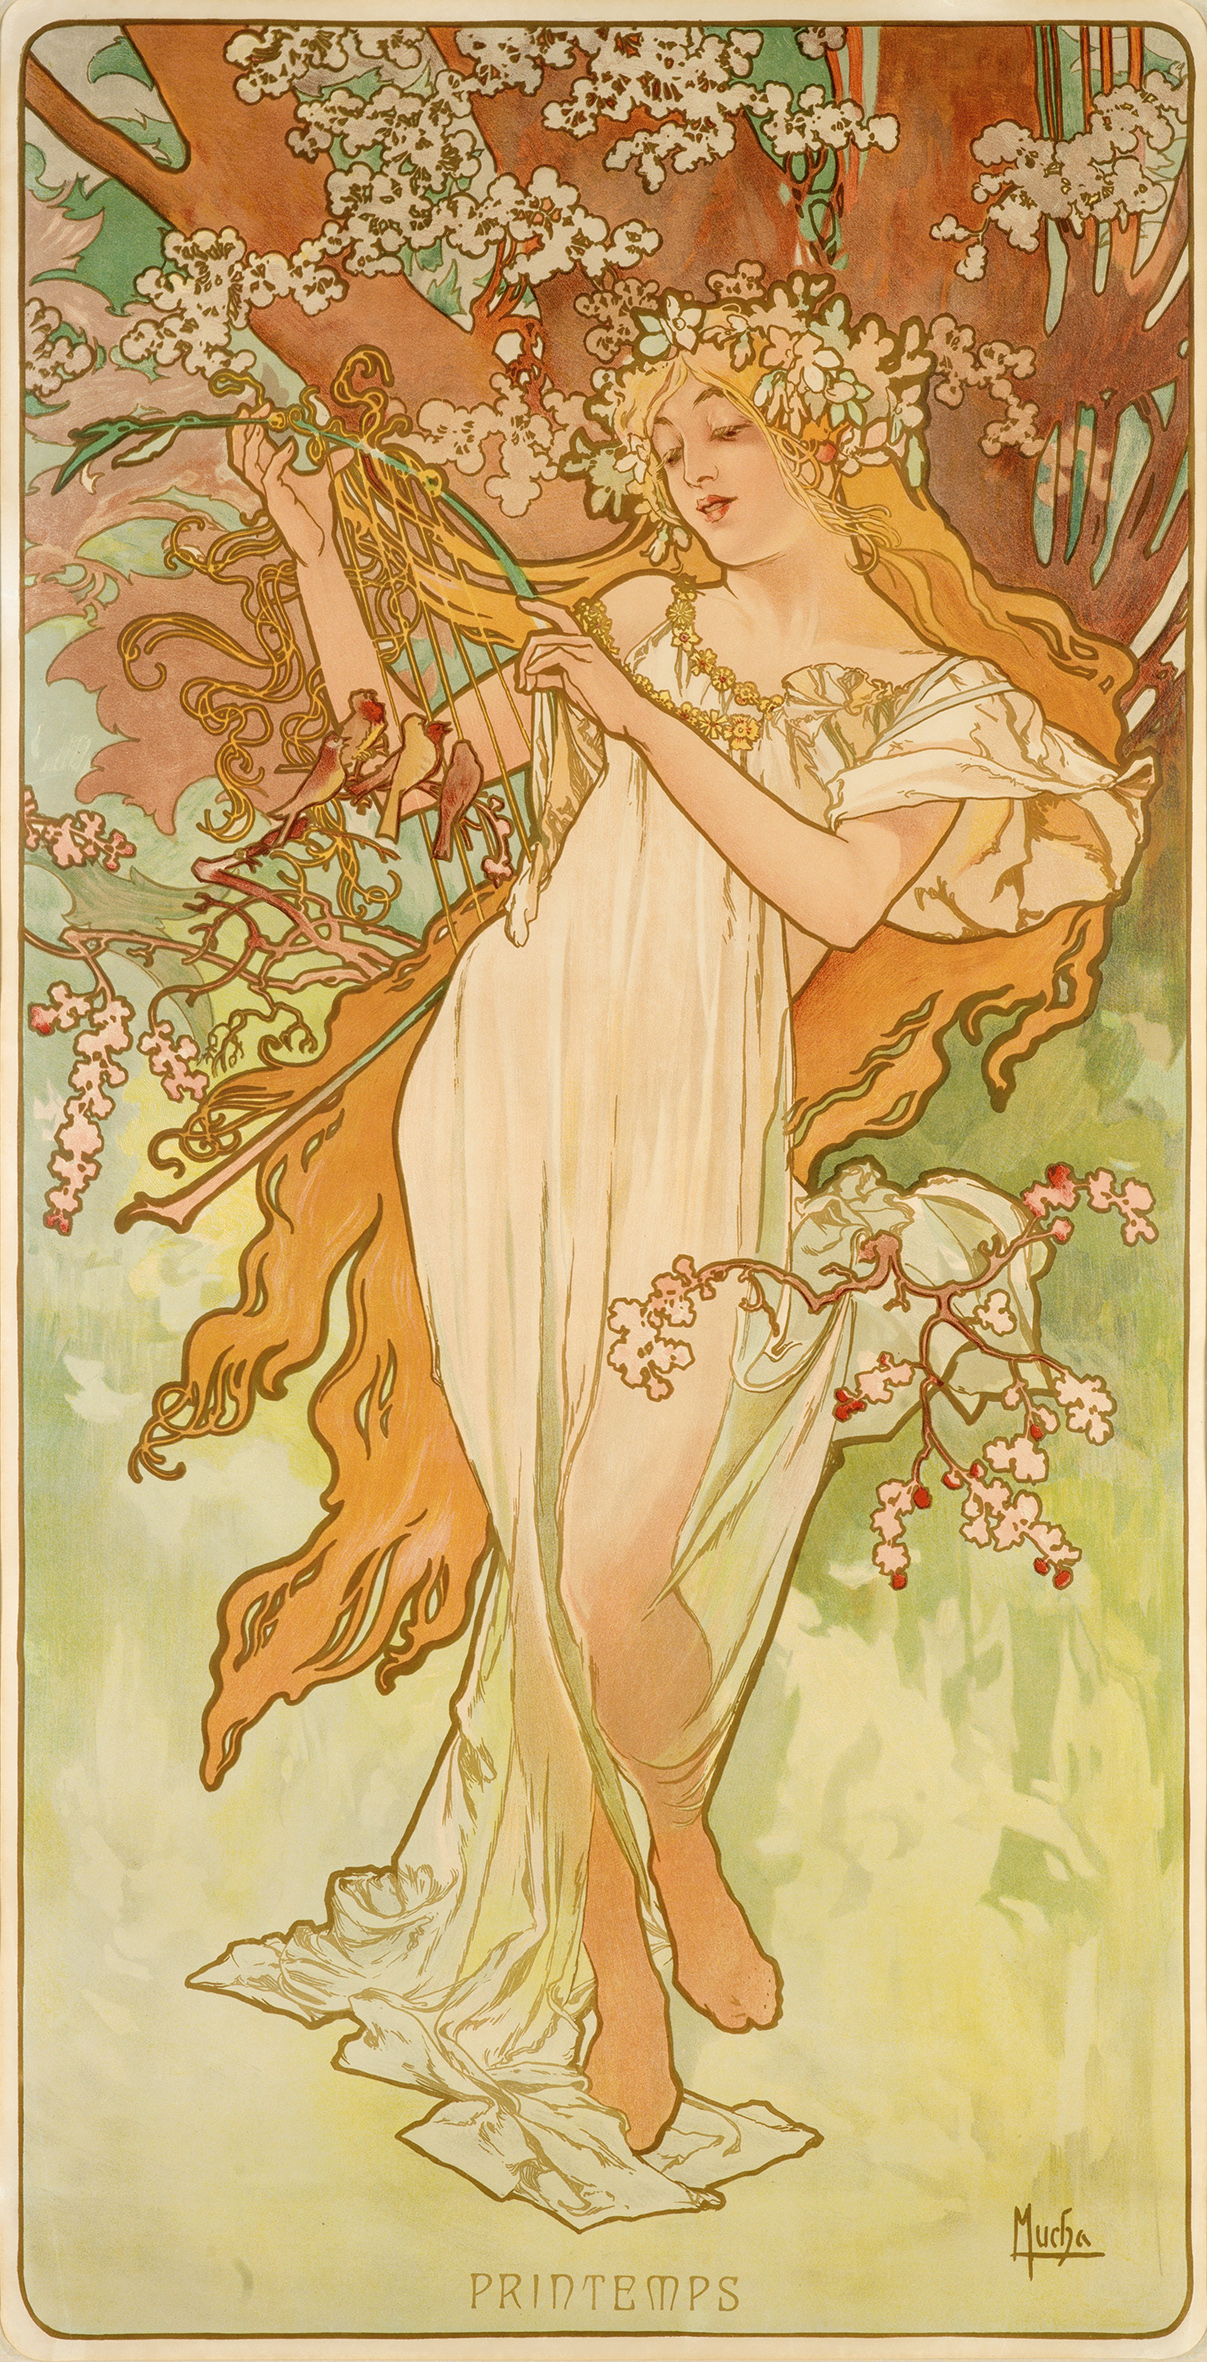 illustrational poster of a woman playing a harp and dancing amongst flowers